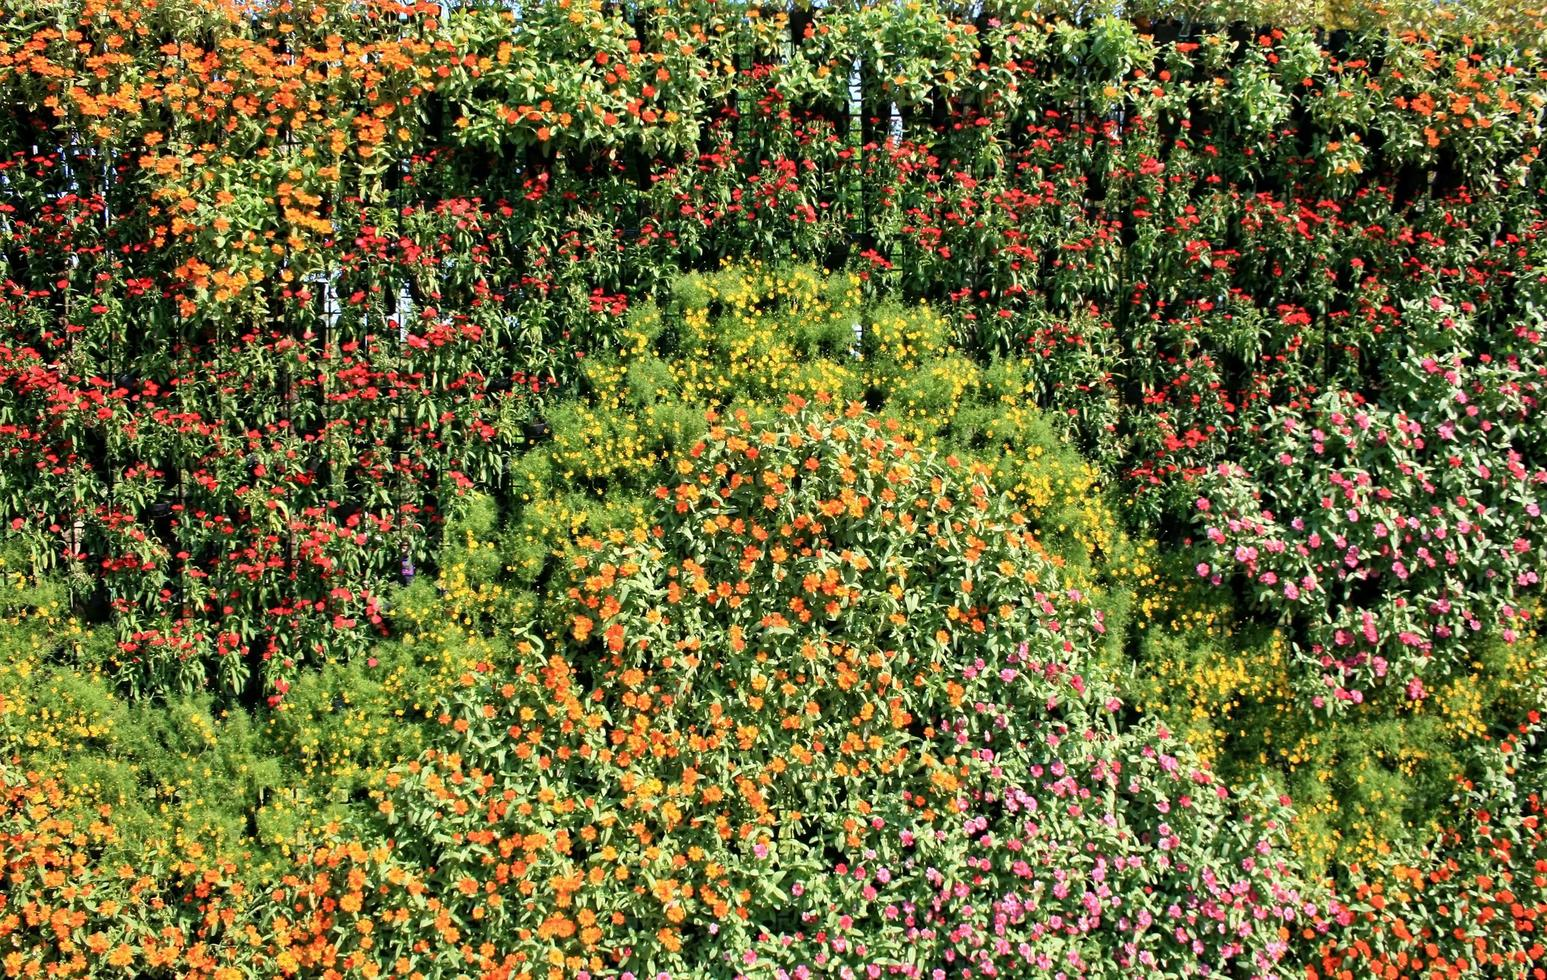 Colorful Flower Wall Stock Photo